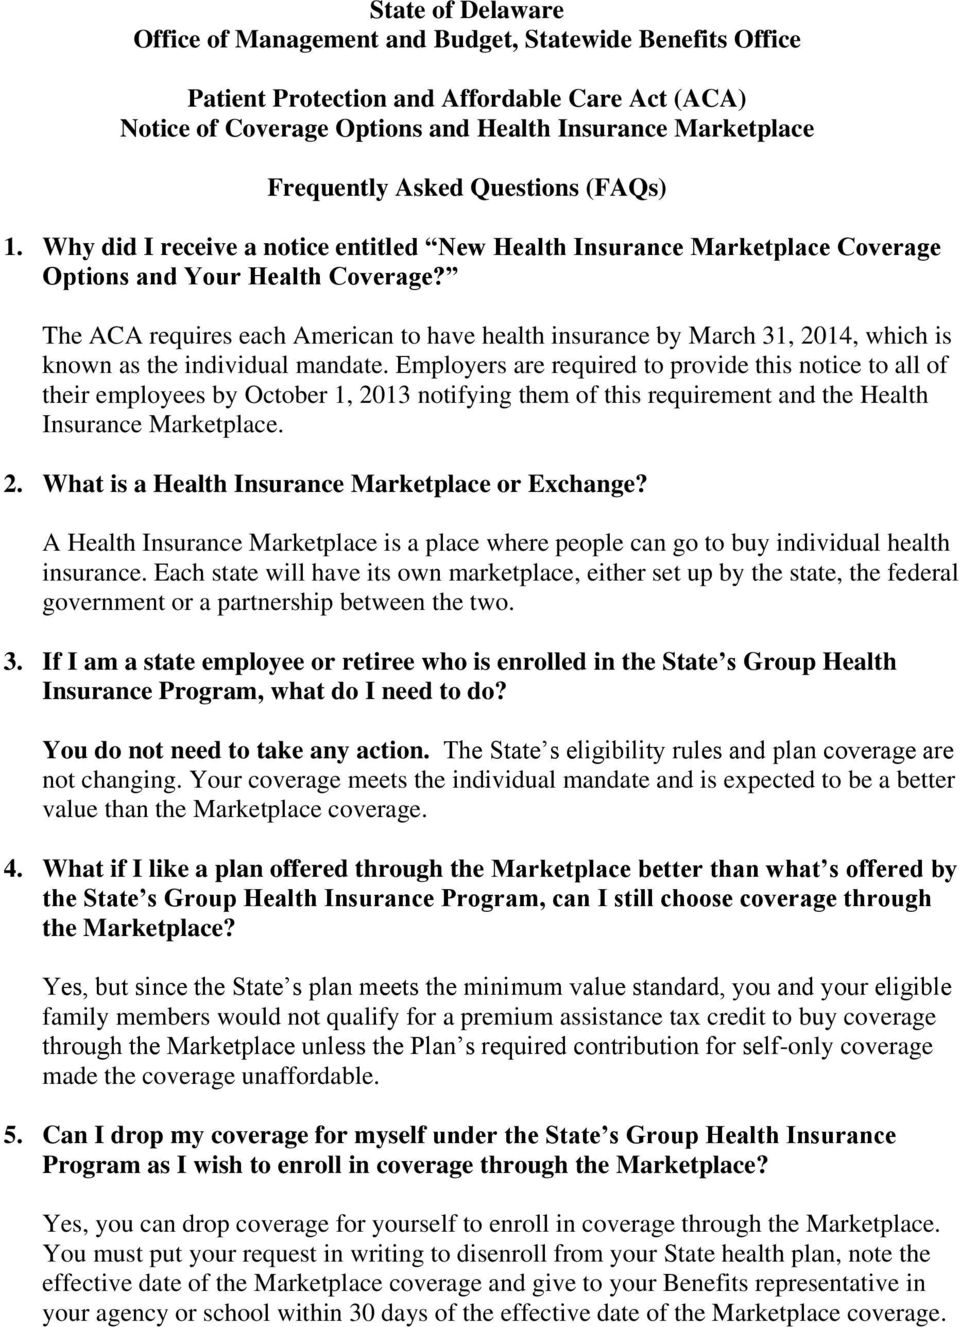 The ACA requires each American to have health insurance by March 31, 2014, which is known as the individual mandate.